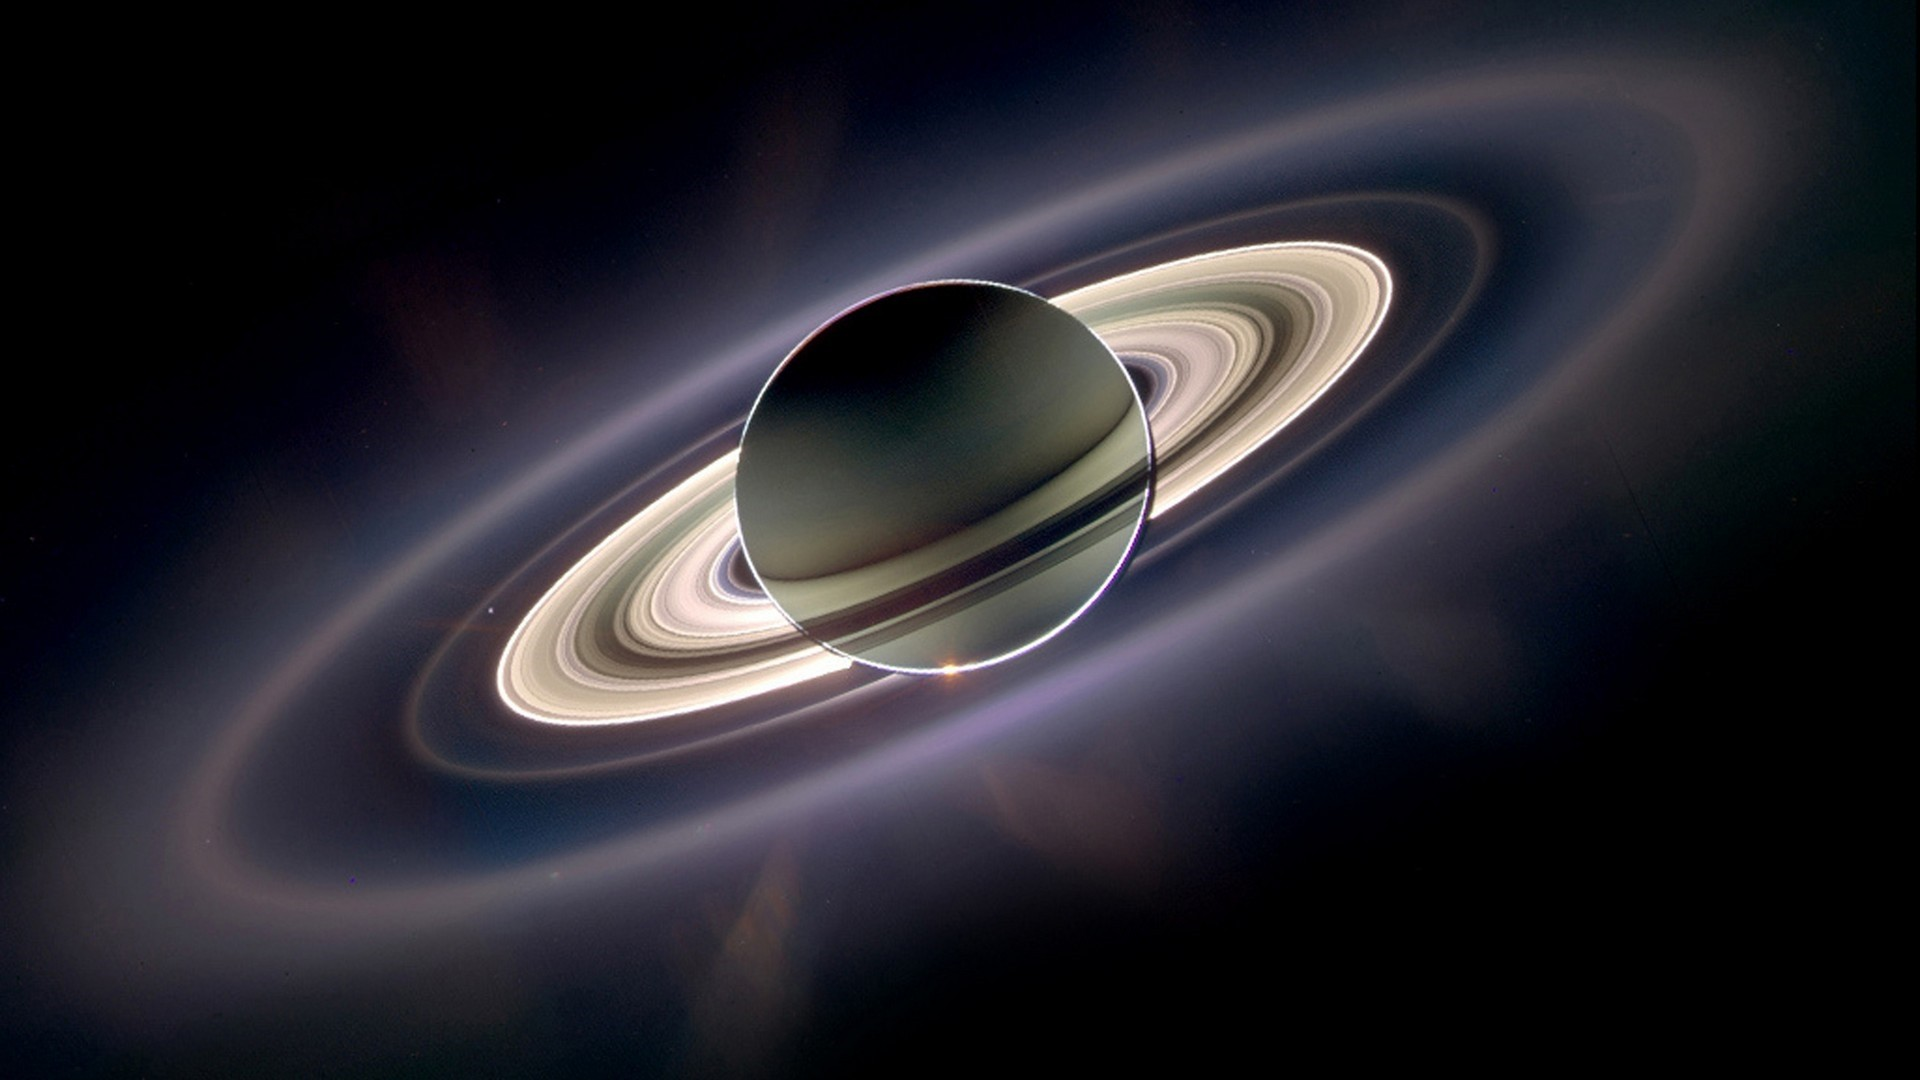 Saturn Free Wallpaper and Background